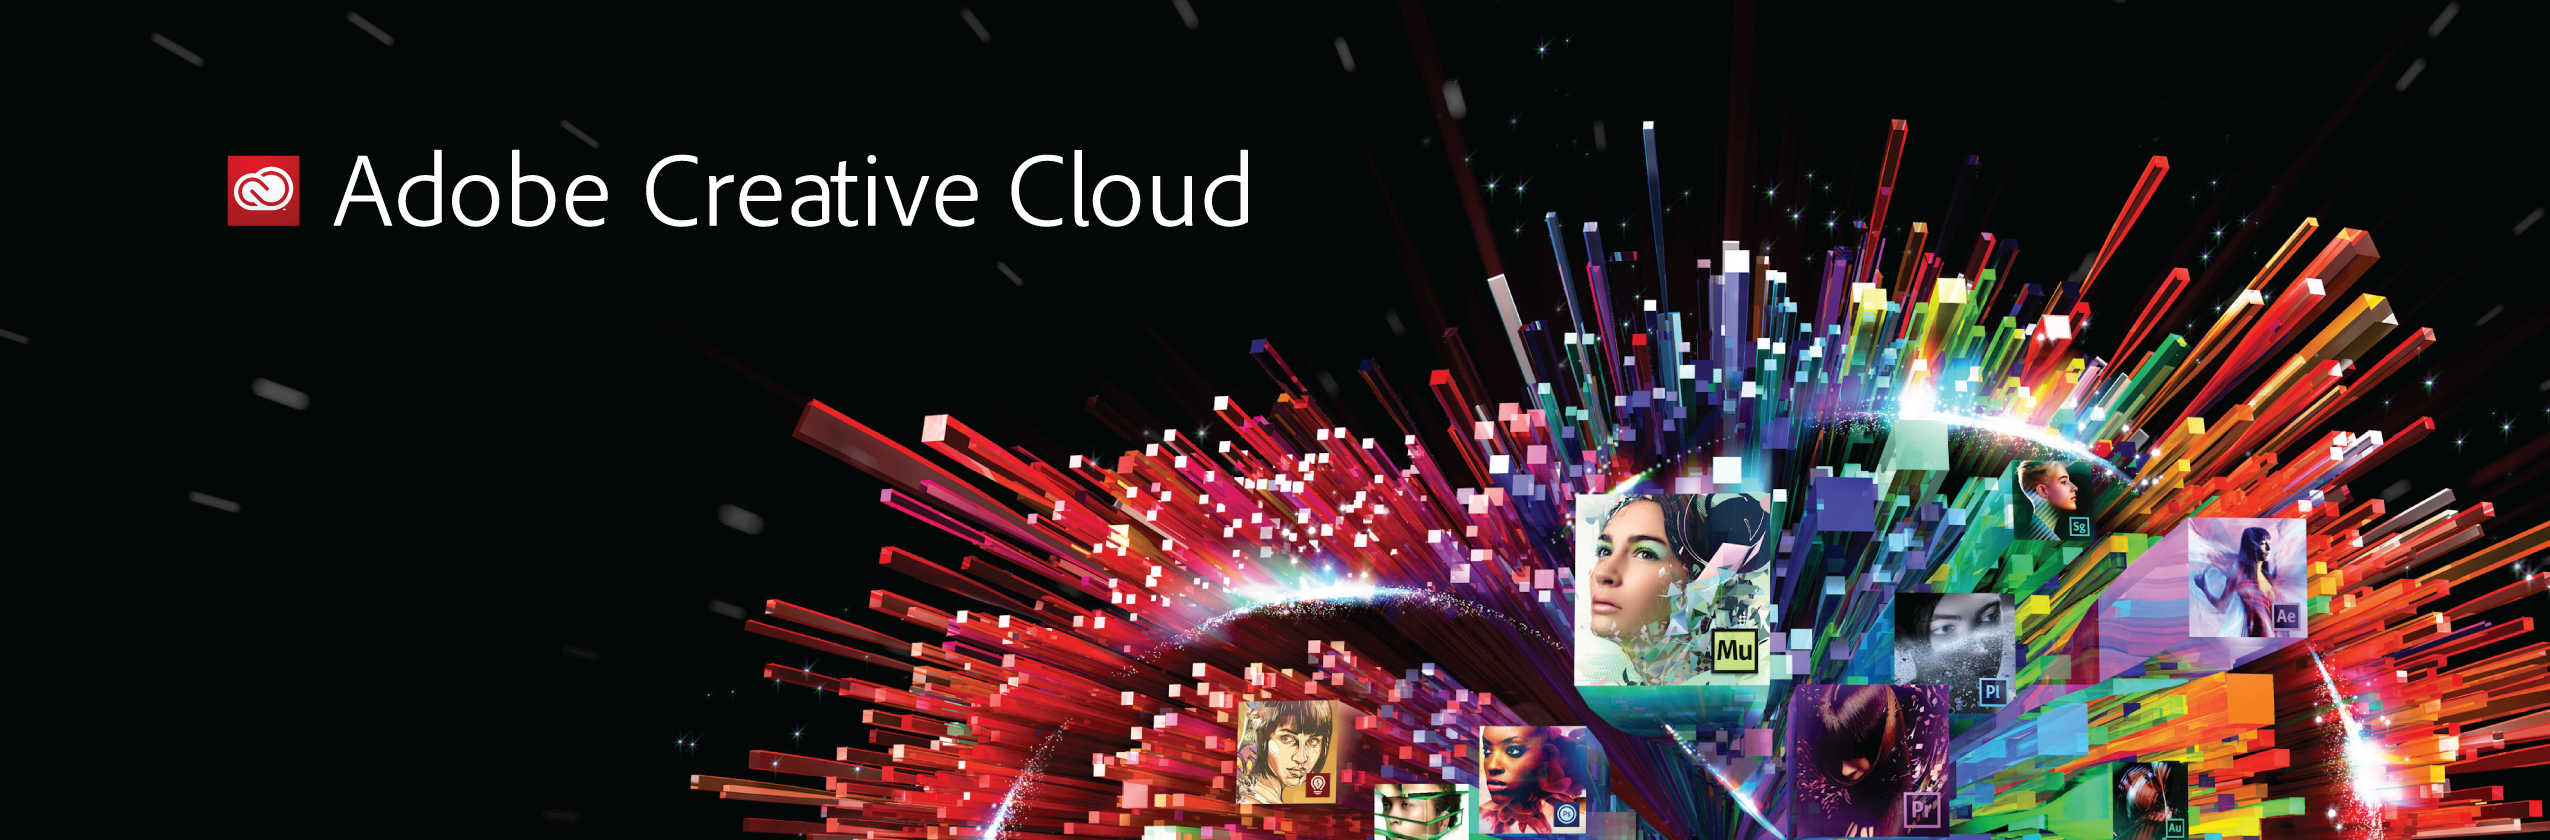 adobe_creative_cloud_header